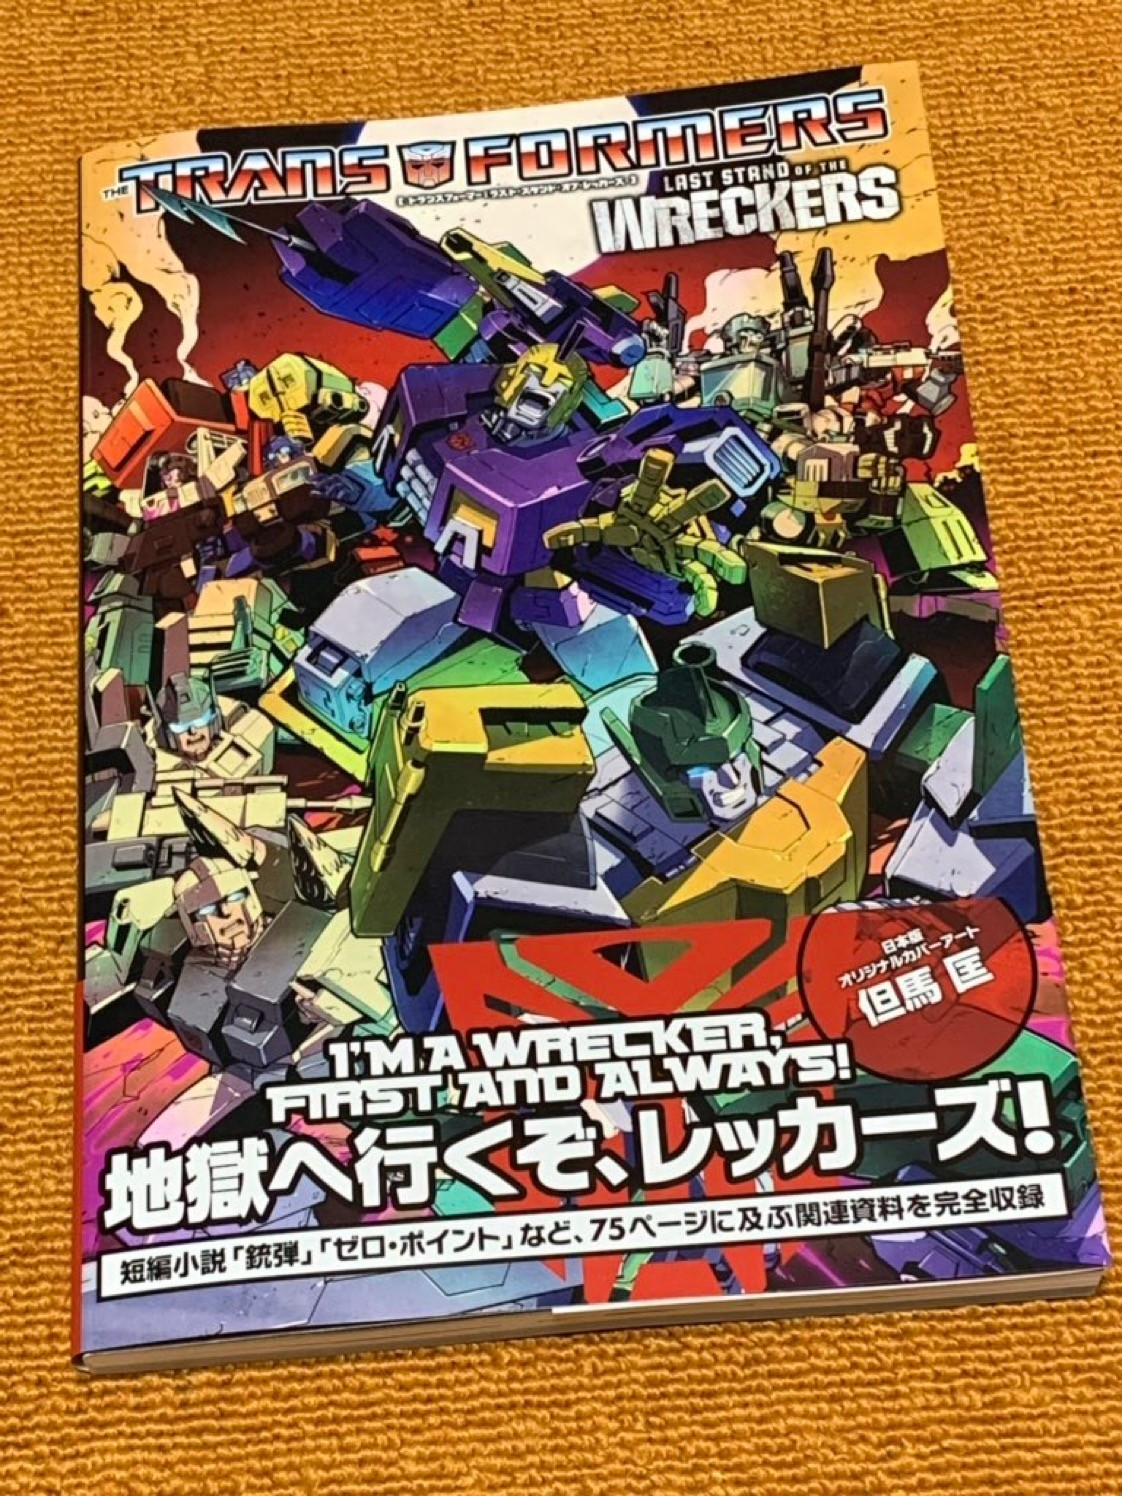 Transformers News: Japanese Edition of IDW More Than Meets the Eye and Robots In Disguise Arriving on September 2nd